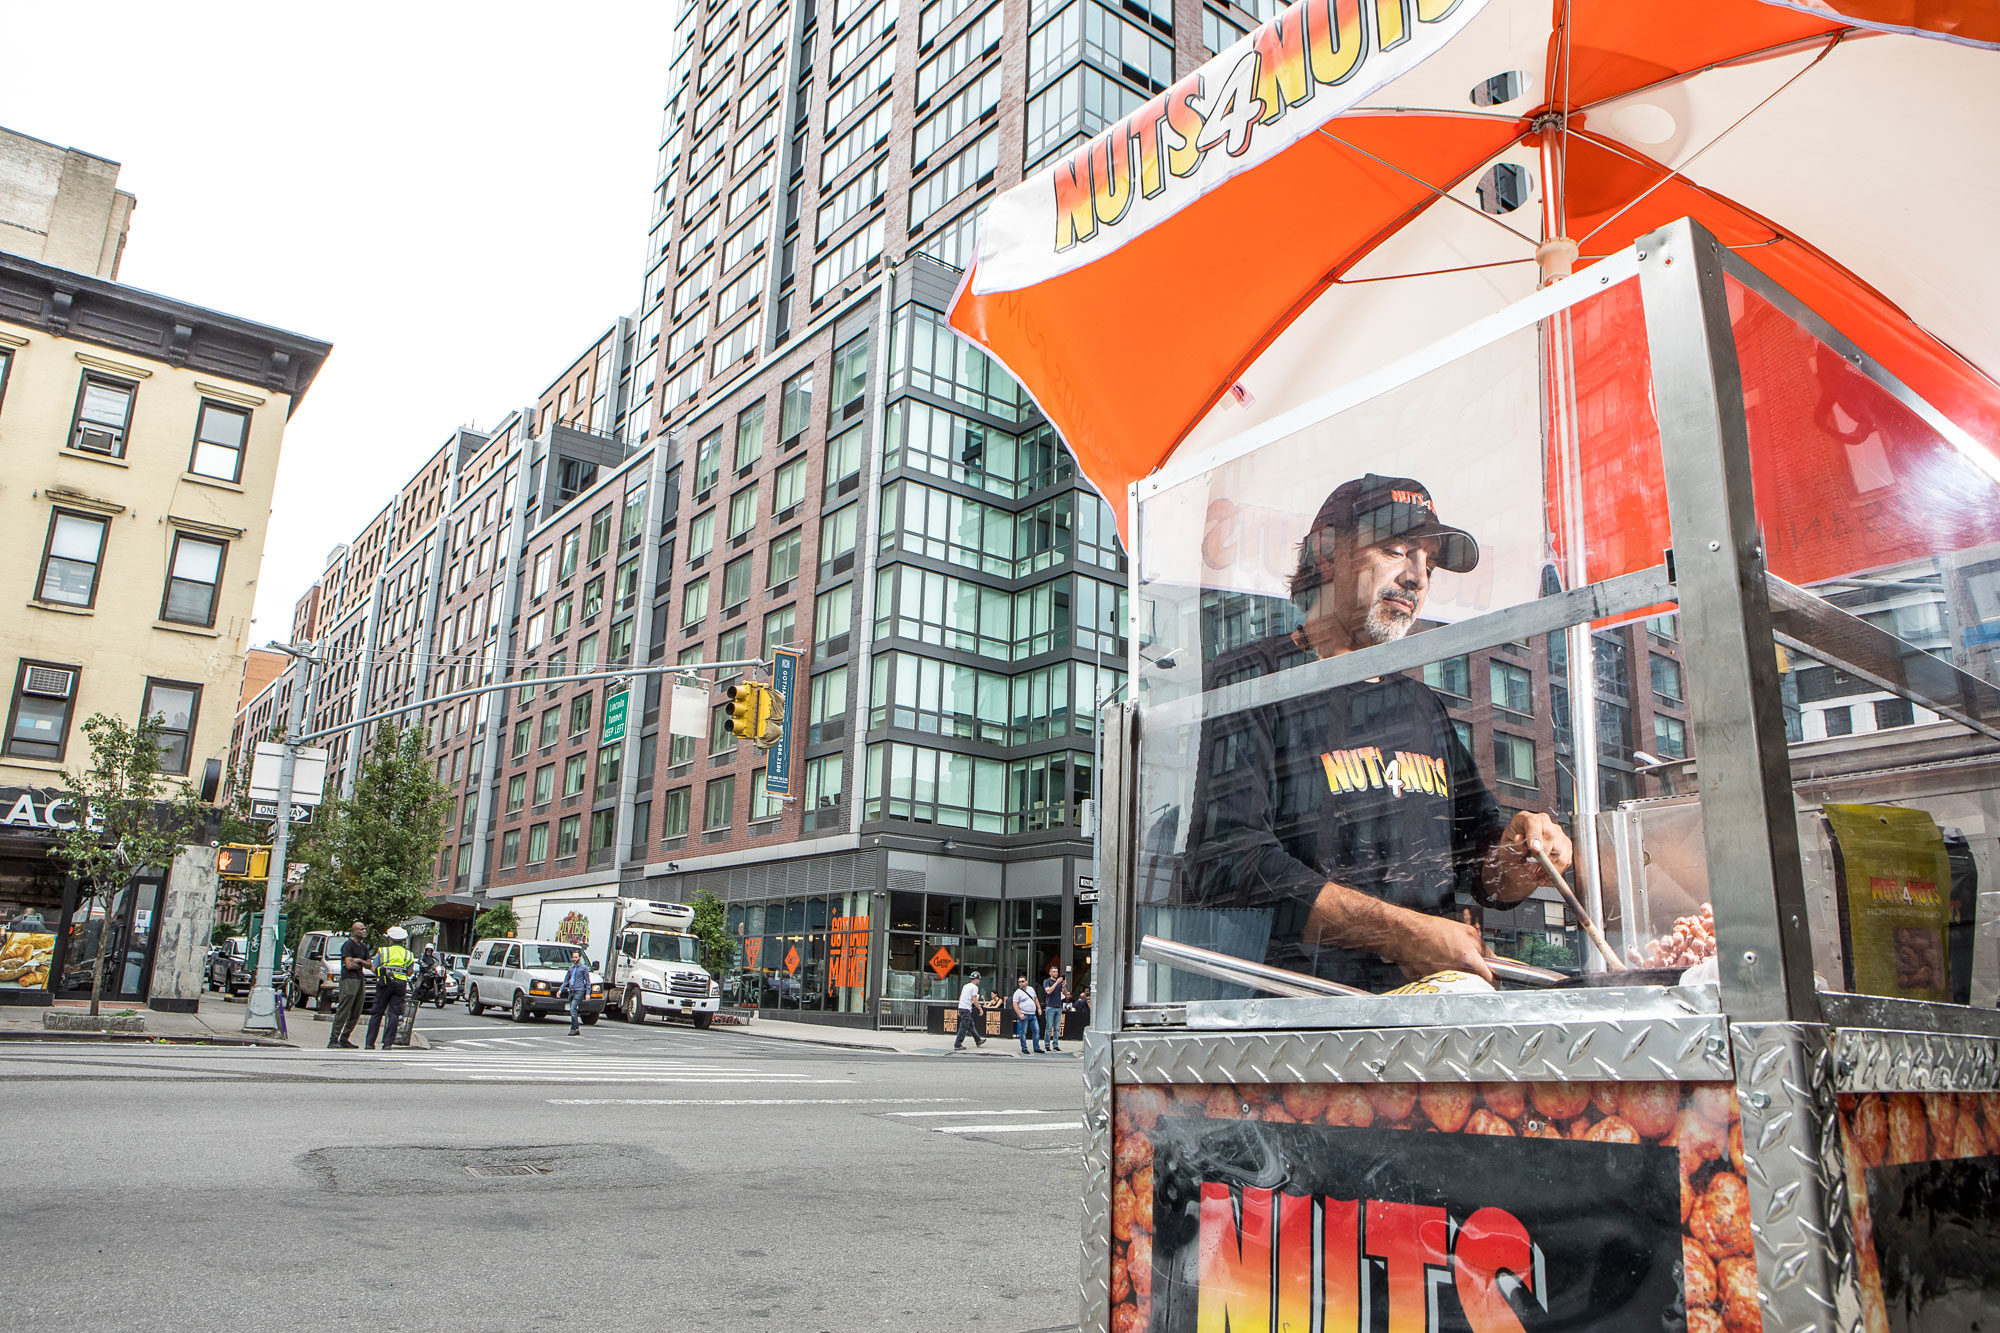 Article-Nutz4Nutz-Candied-Nut-Cart-NYC